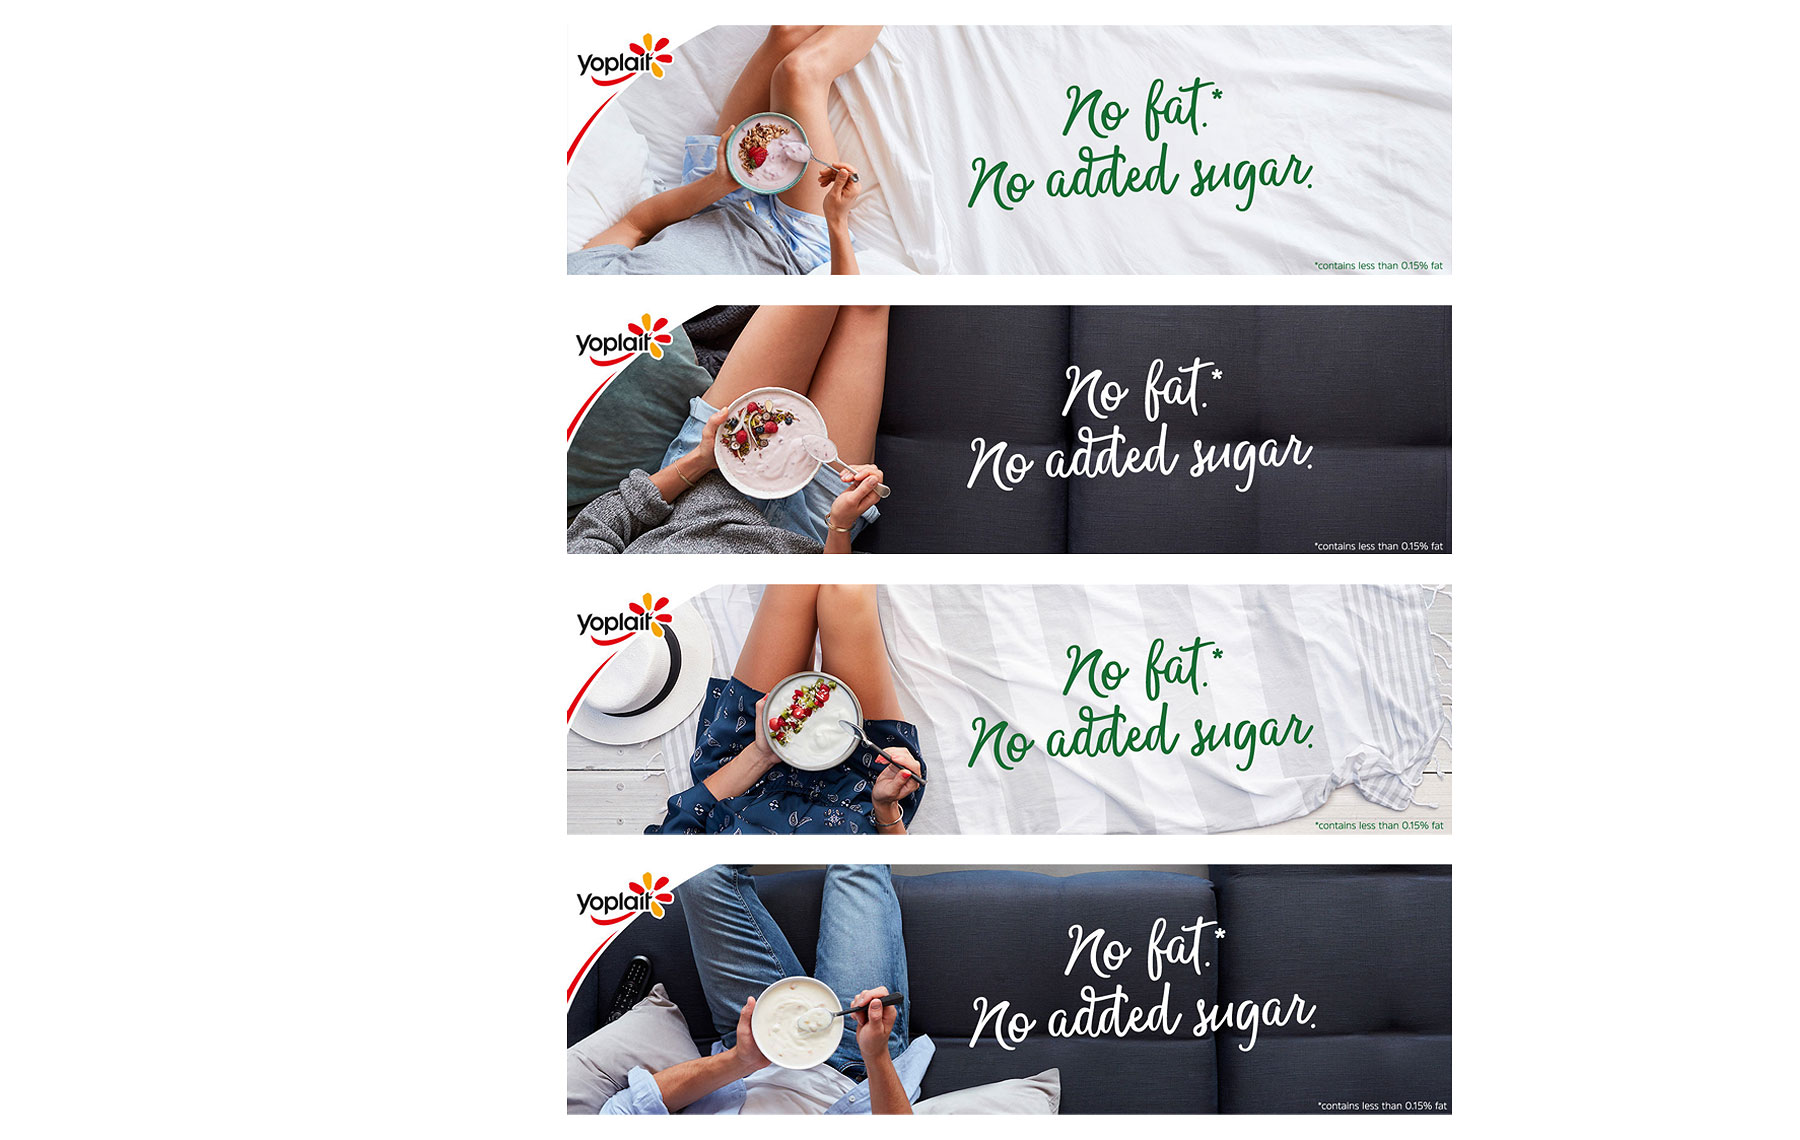 Yoplait_4ads